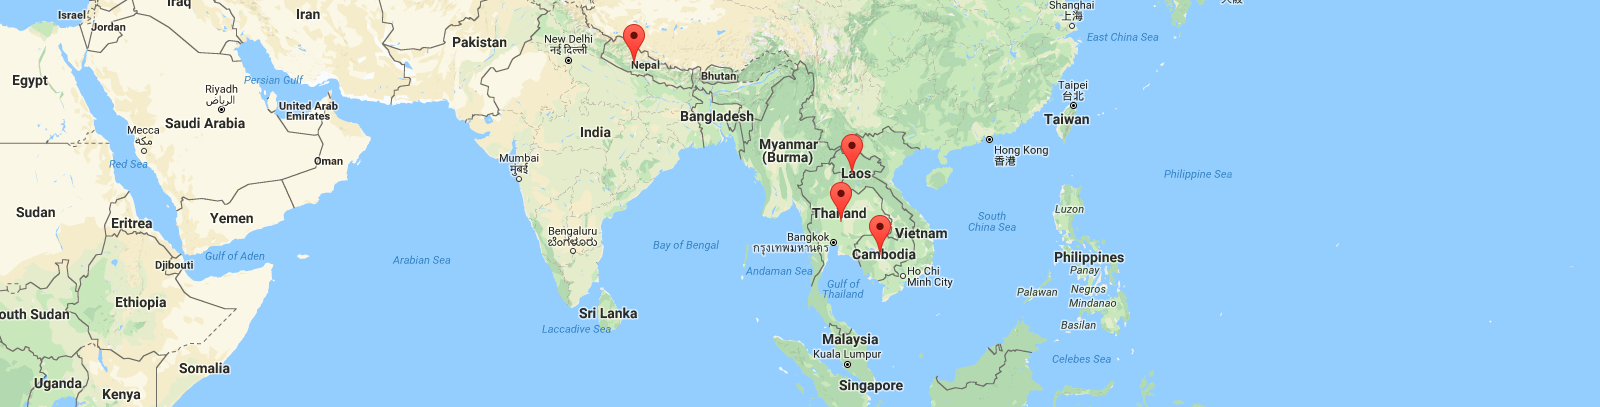 Volunteer projects map